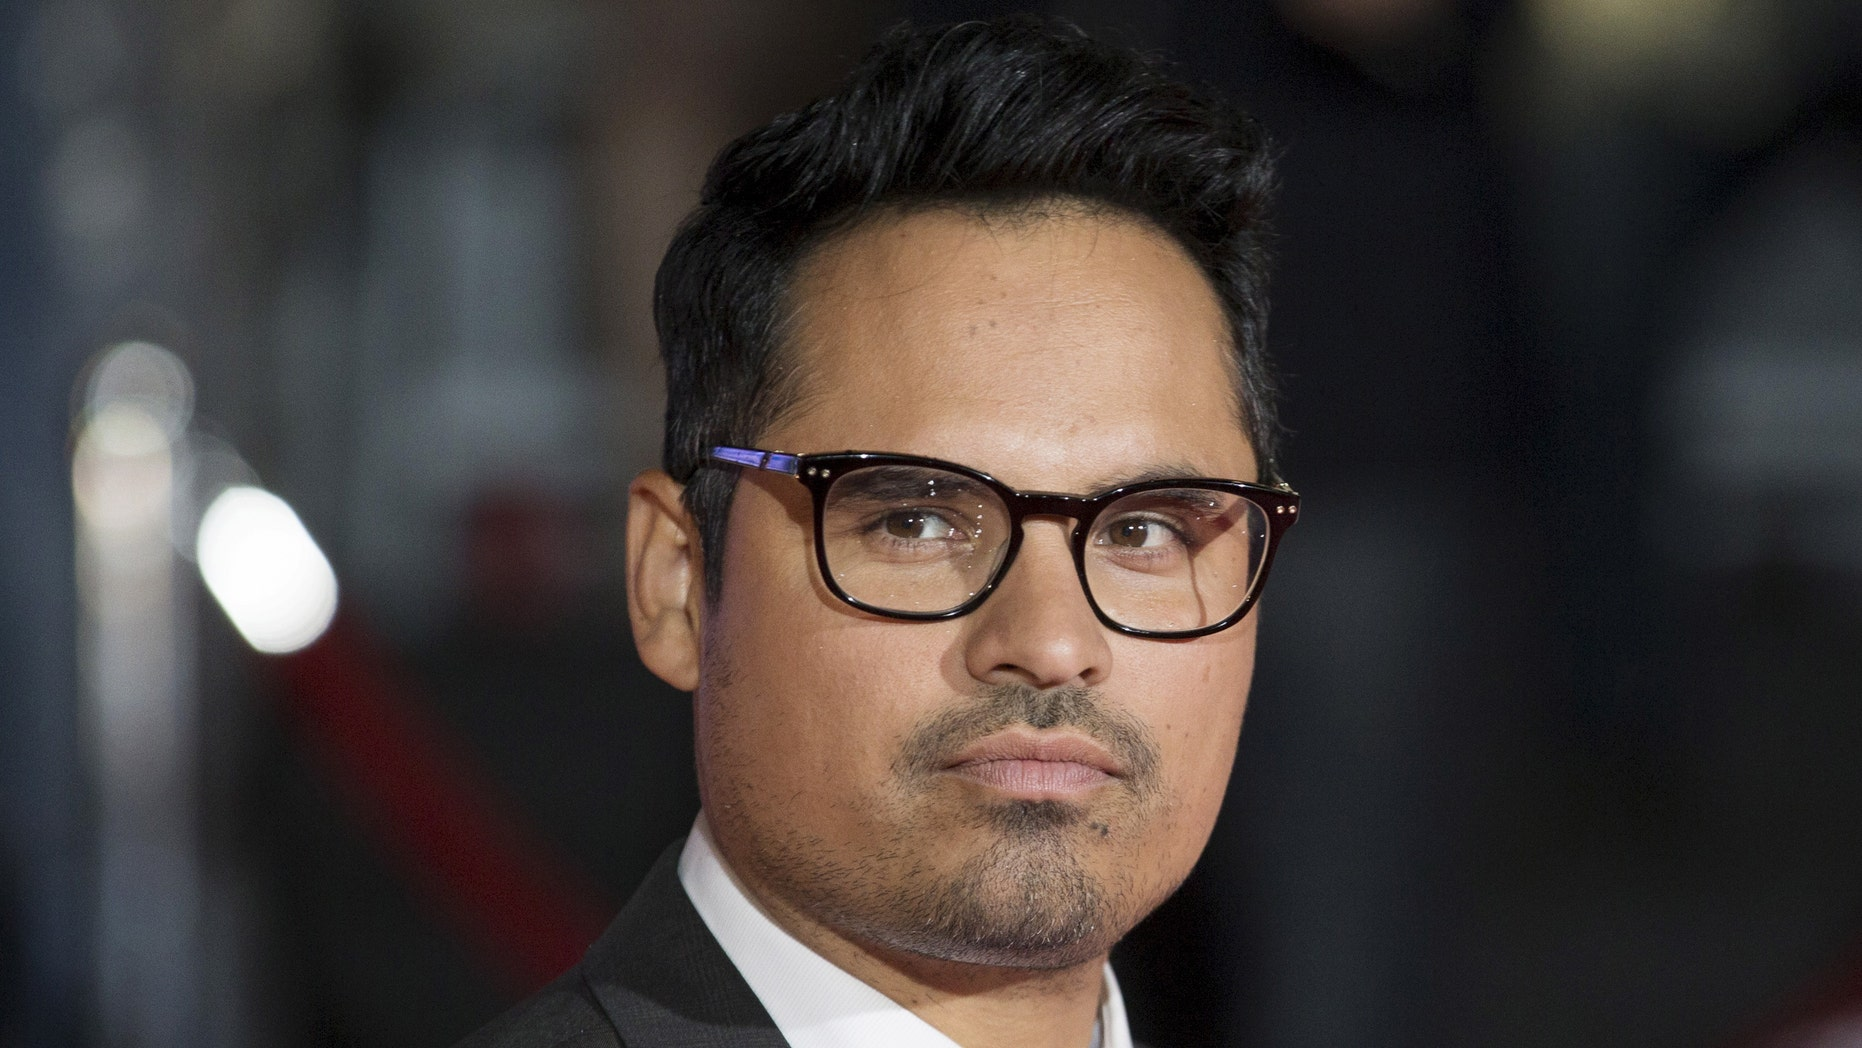 """Michael Pena arrives on the red carpet for the film """"The Martian"""" during the 40th Toronto International Film Festival in Toronto, Canada, September 11, 2015."""